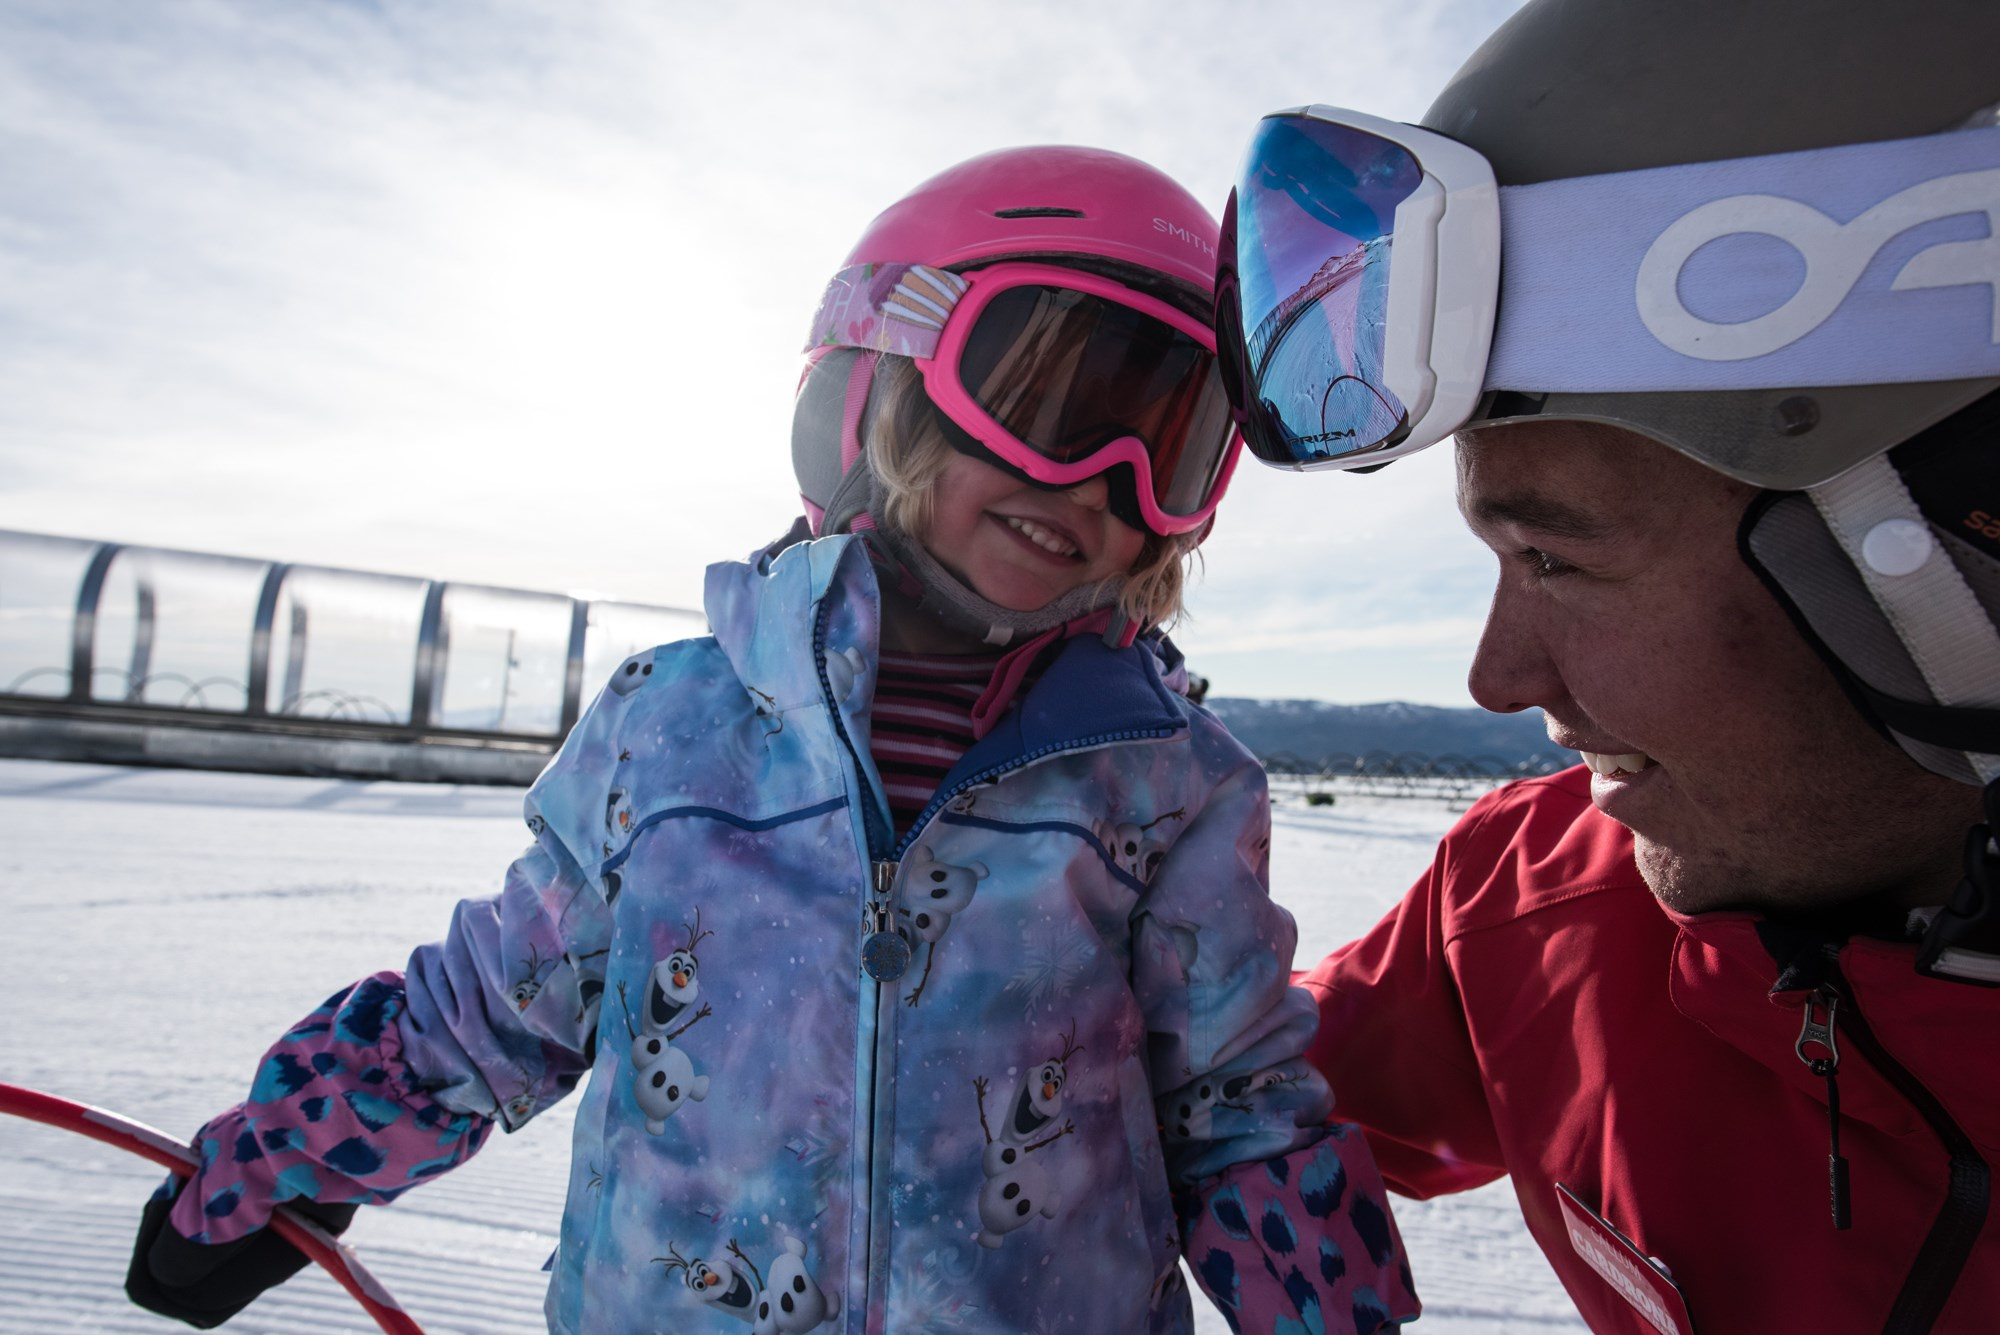 Under 5 Ski Lessons at Cardrona Alpine Resort